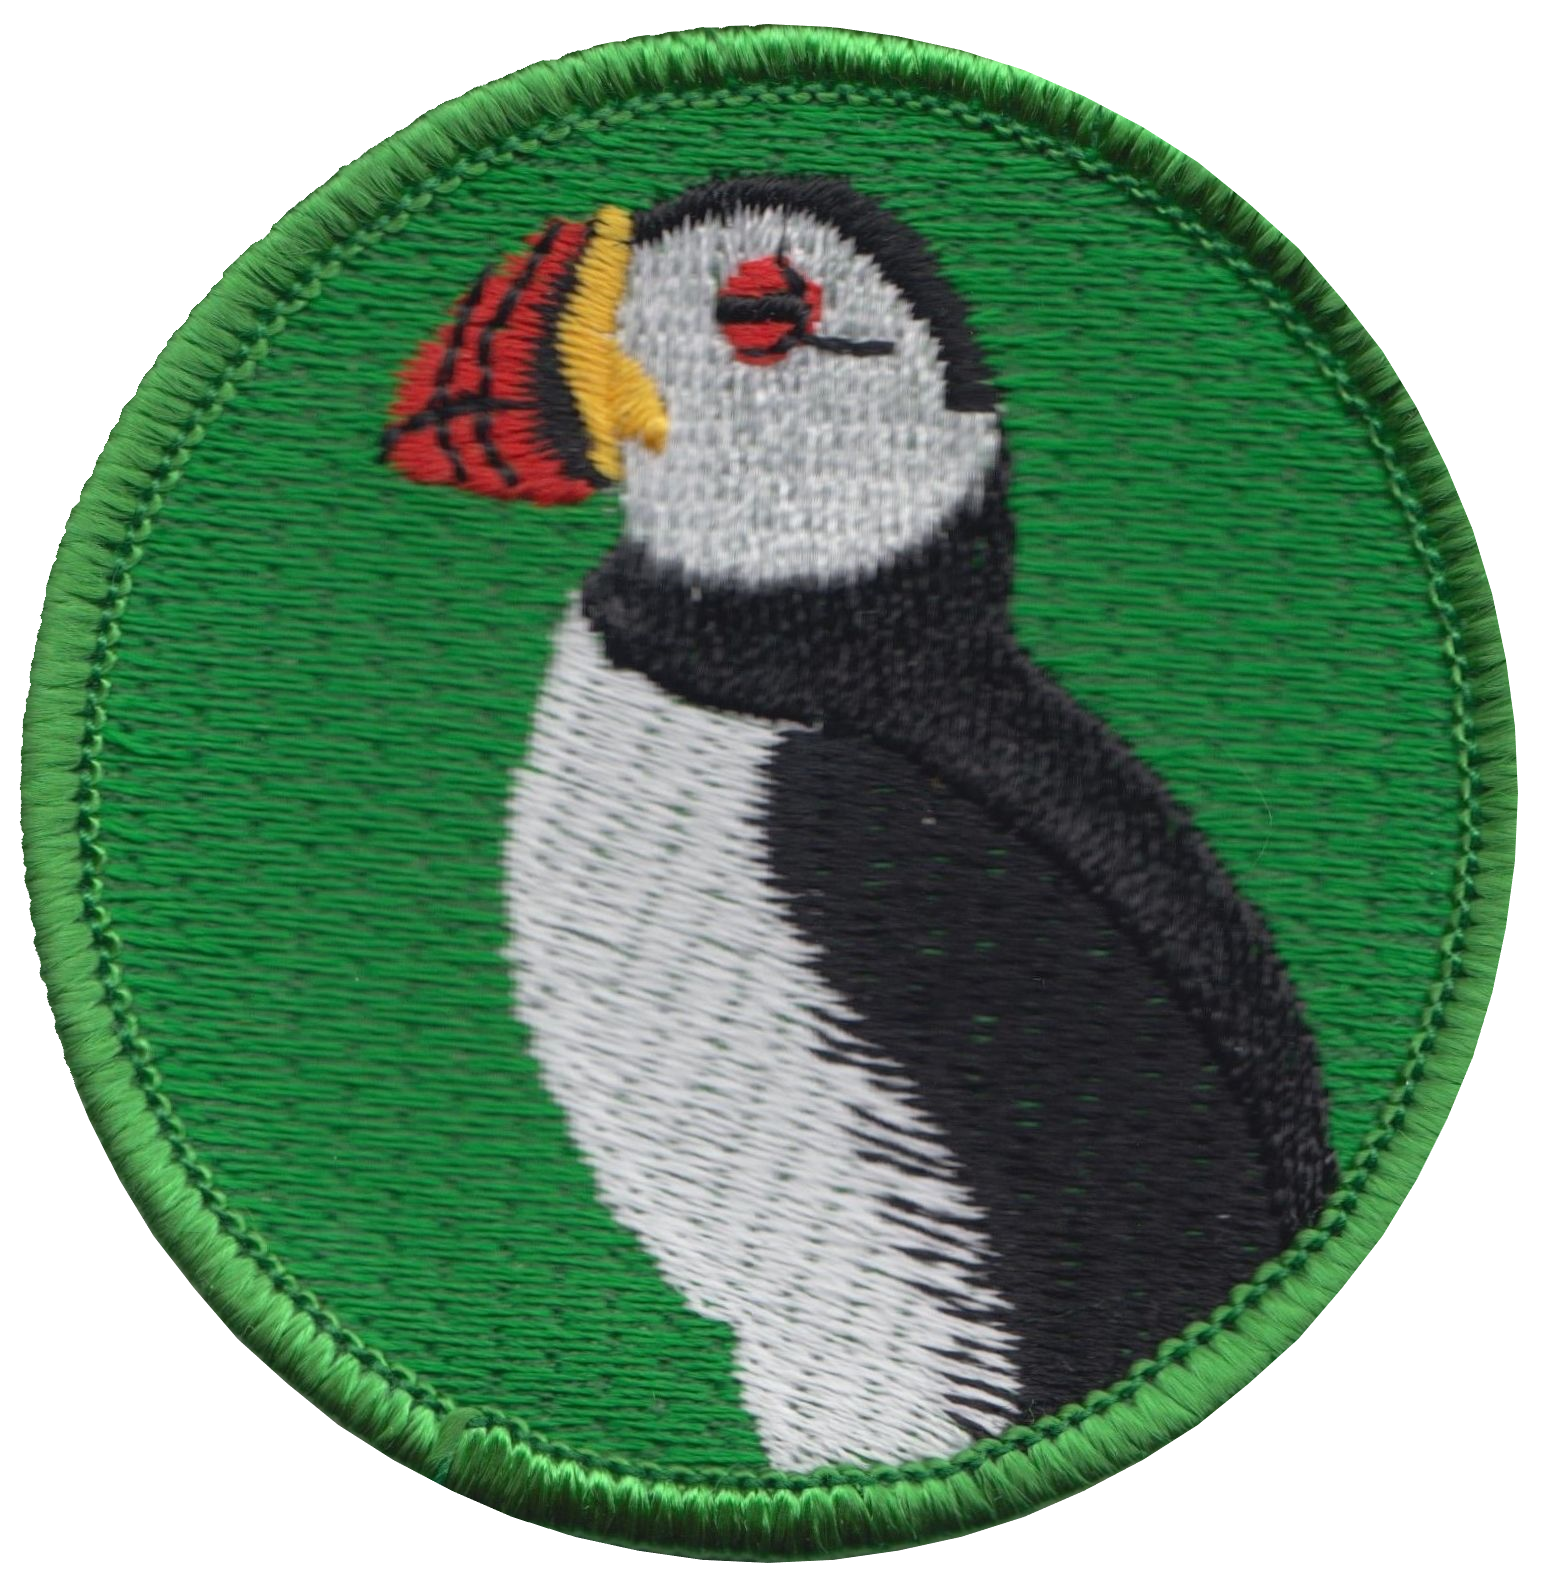 A084 Puffin Bird Embroidered Patch